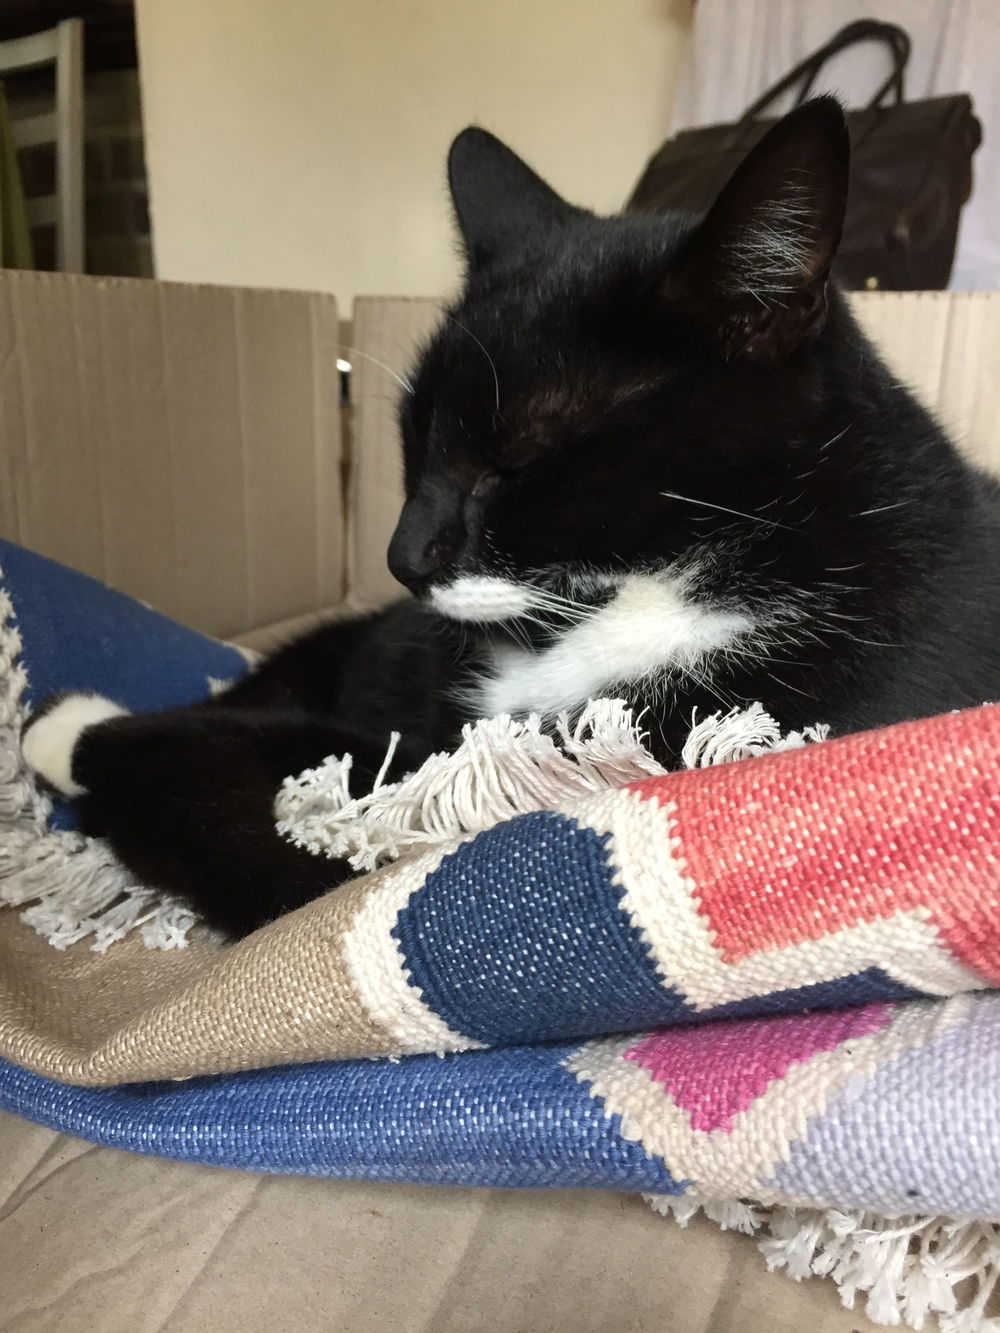 Charles enjoys a snooze in a box of rugs.